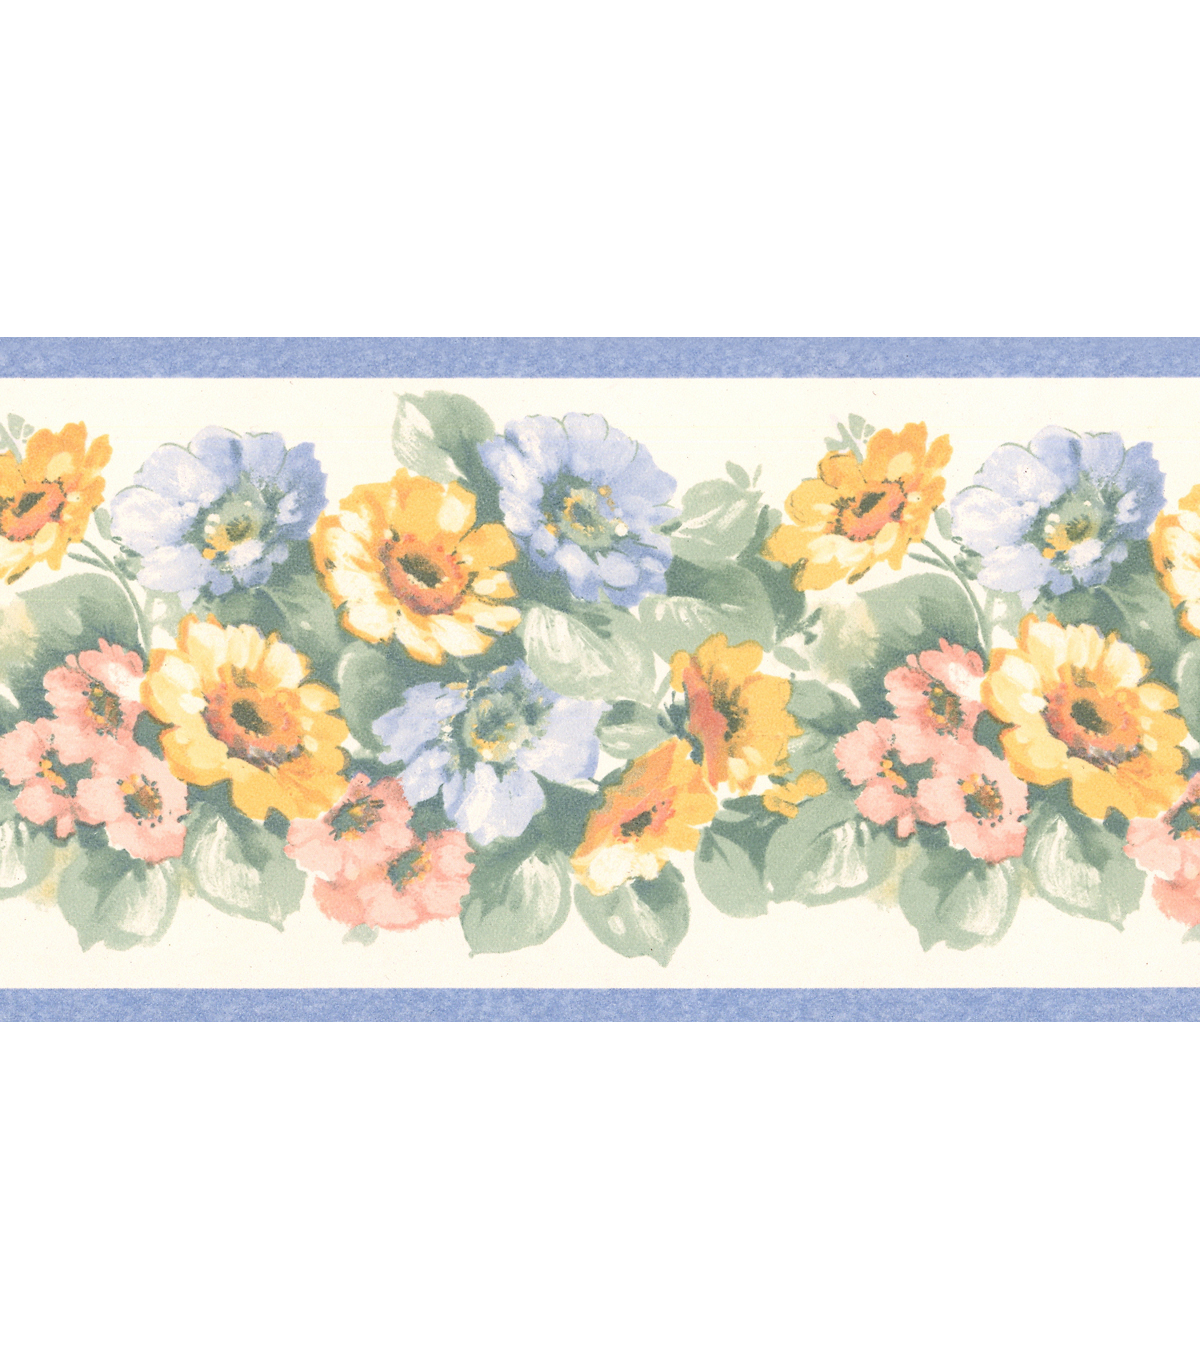 Maryanne Periwinkle Floral Garden Wallpaper Border